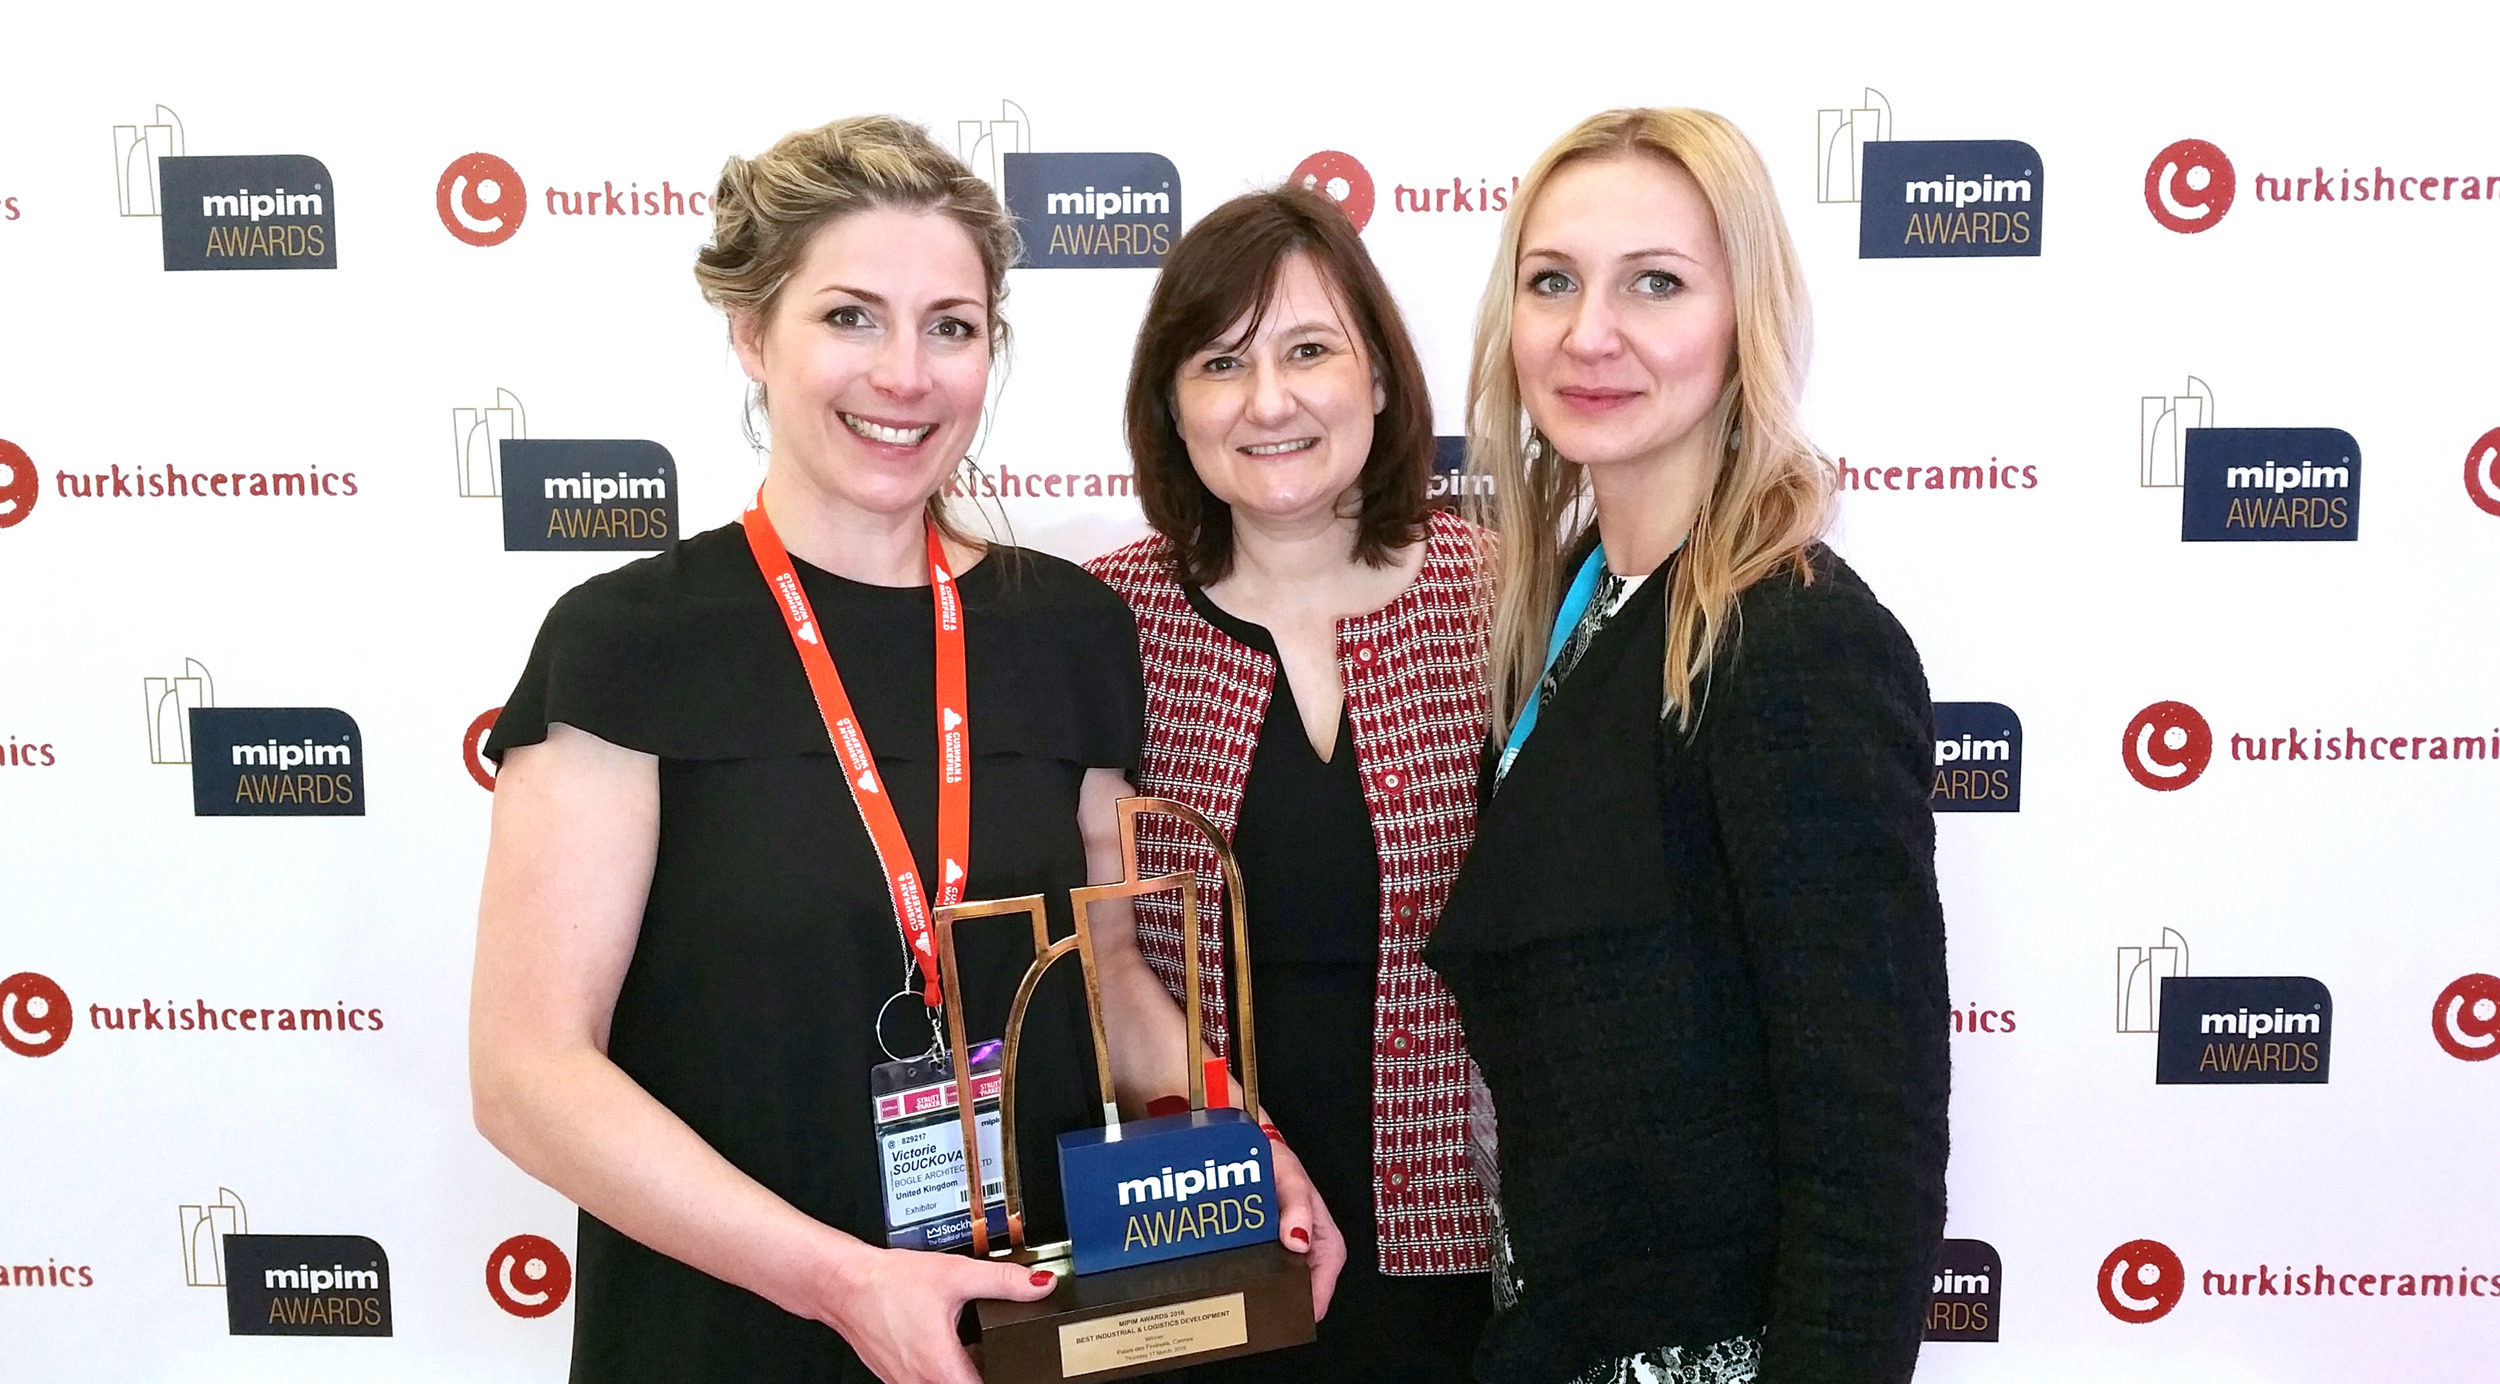 Celebrations! Our Prague studio directors Viktorie and Barbora with the director of MIPIM Béatrice Gravier.